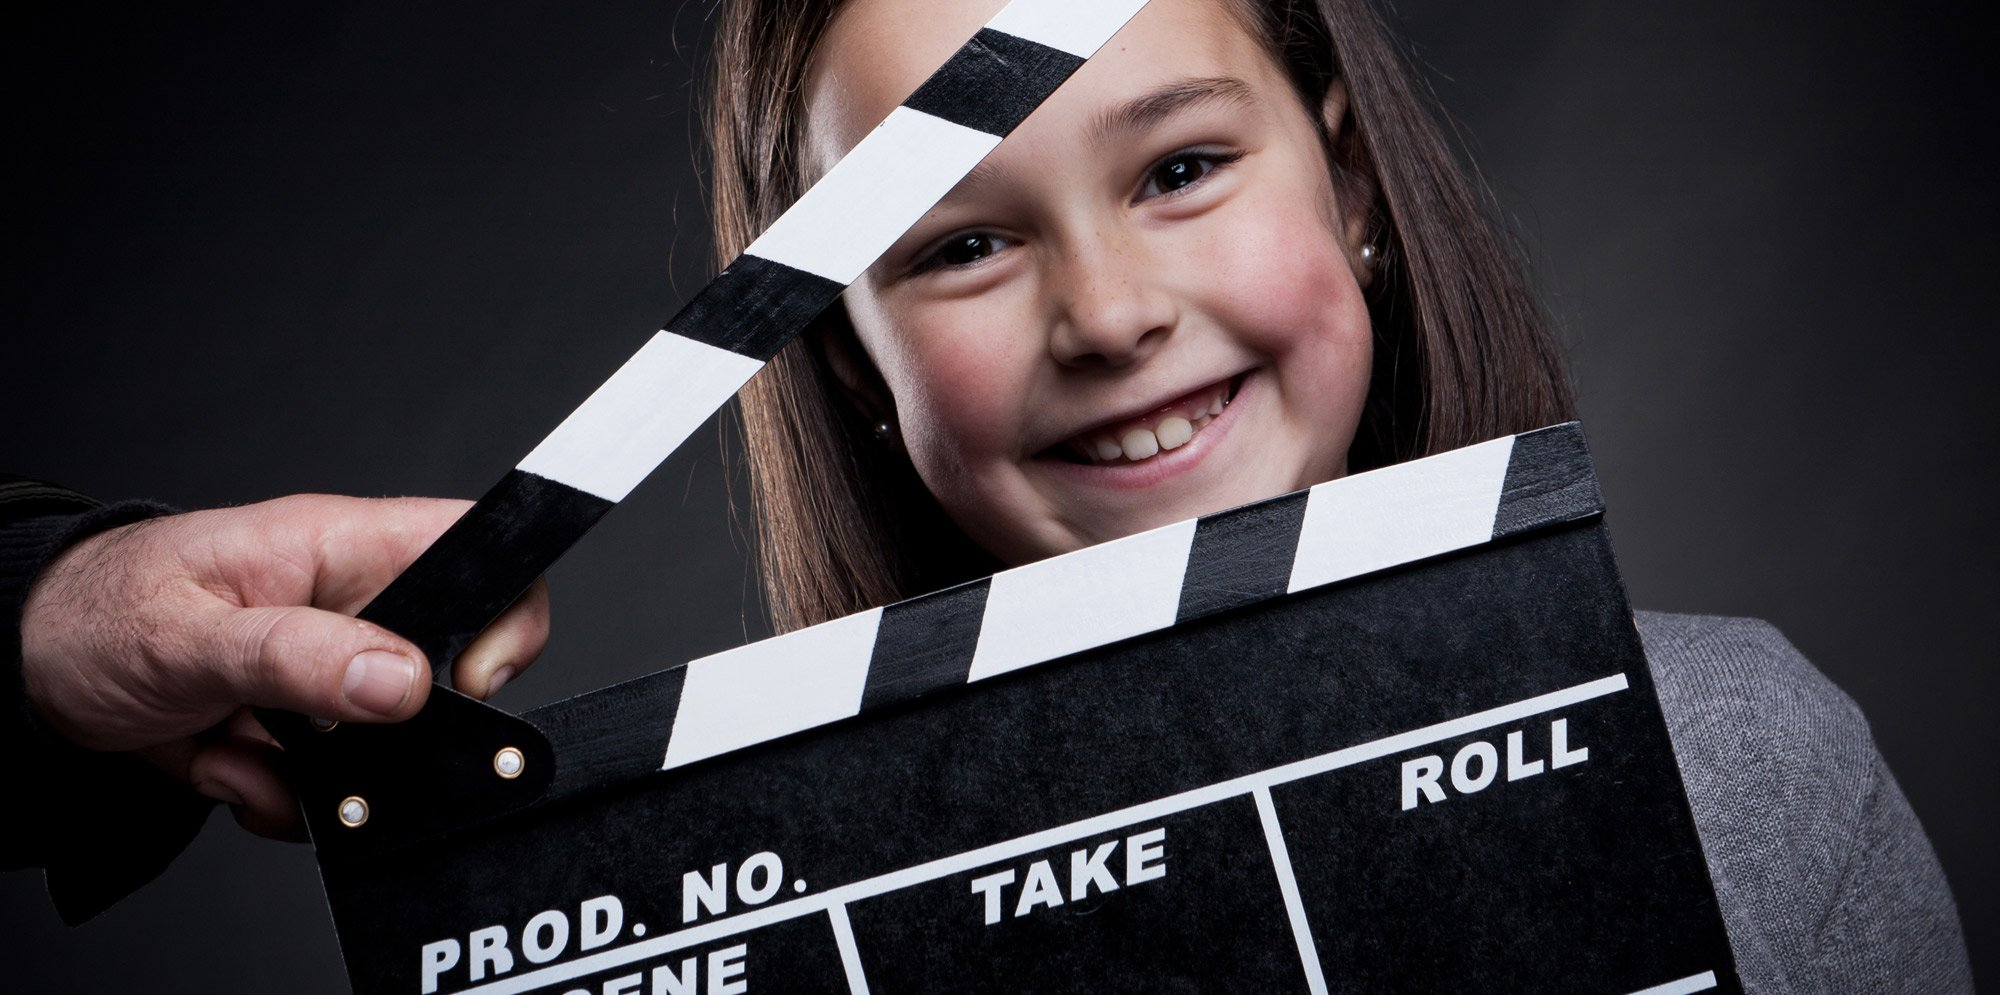 a girl smiling from behind an open clapperboard